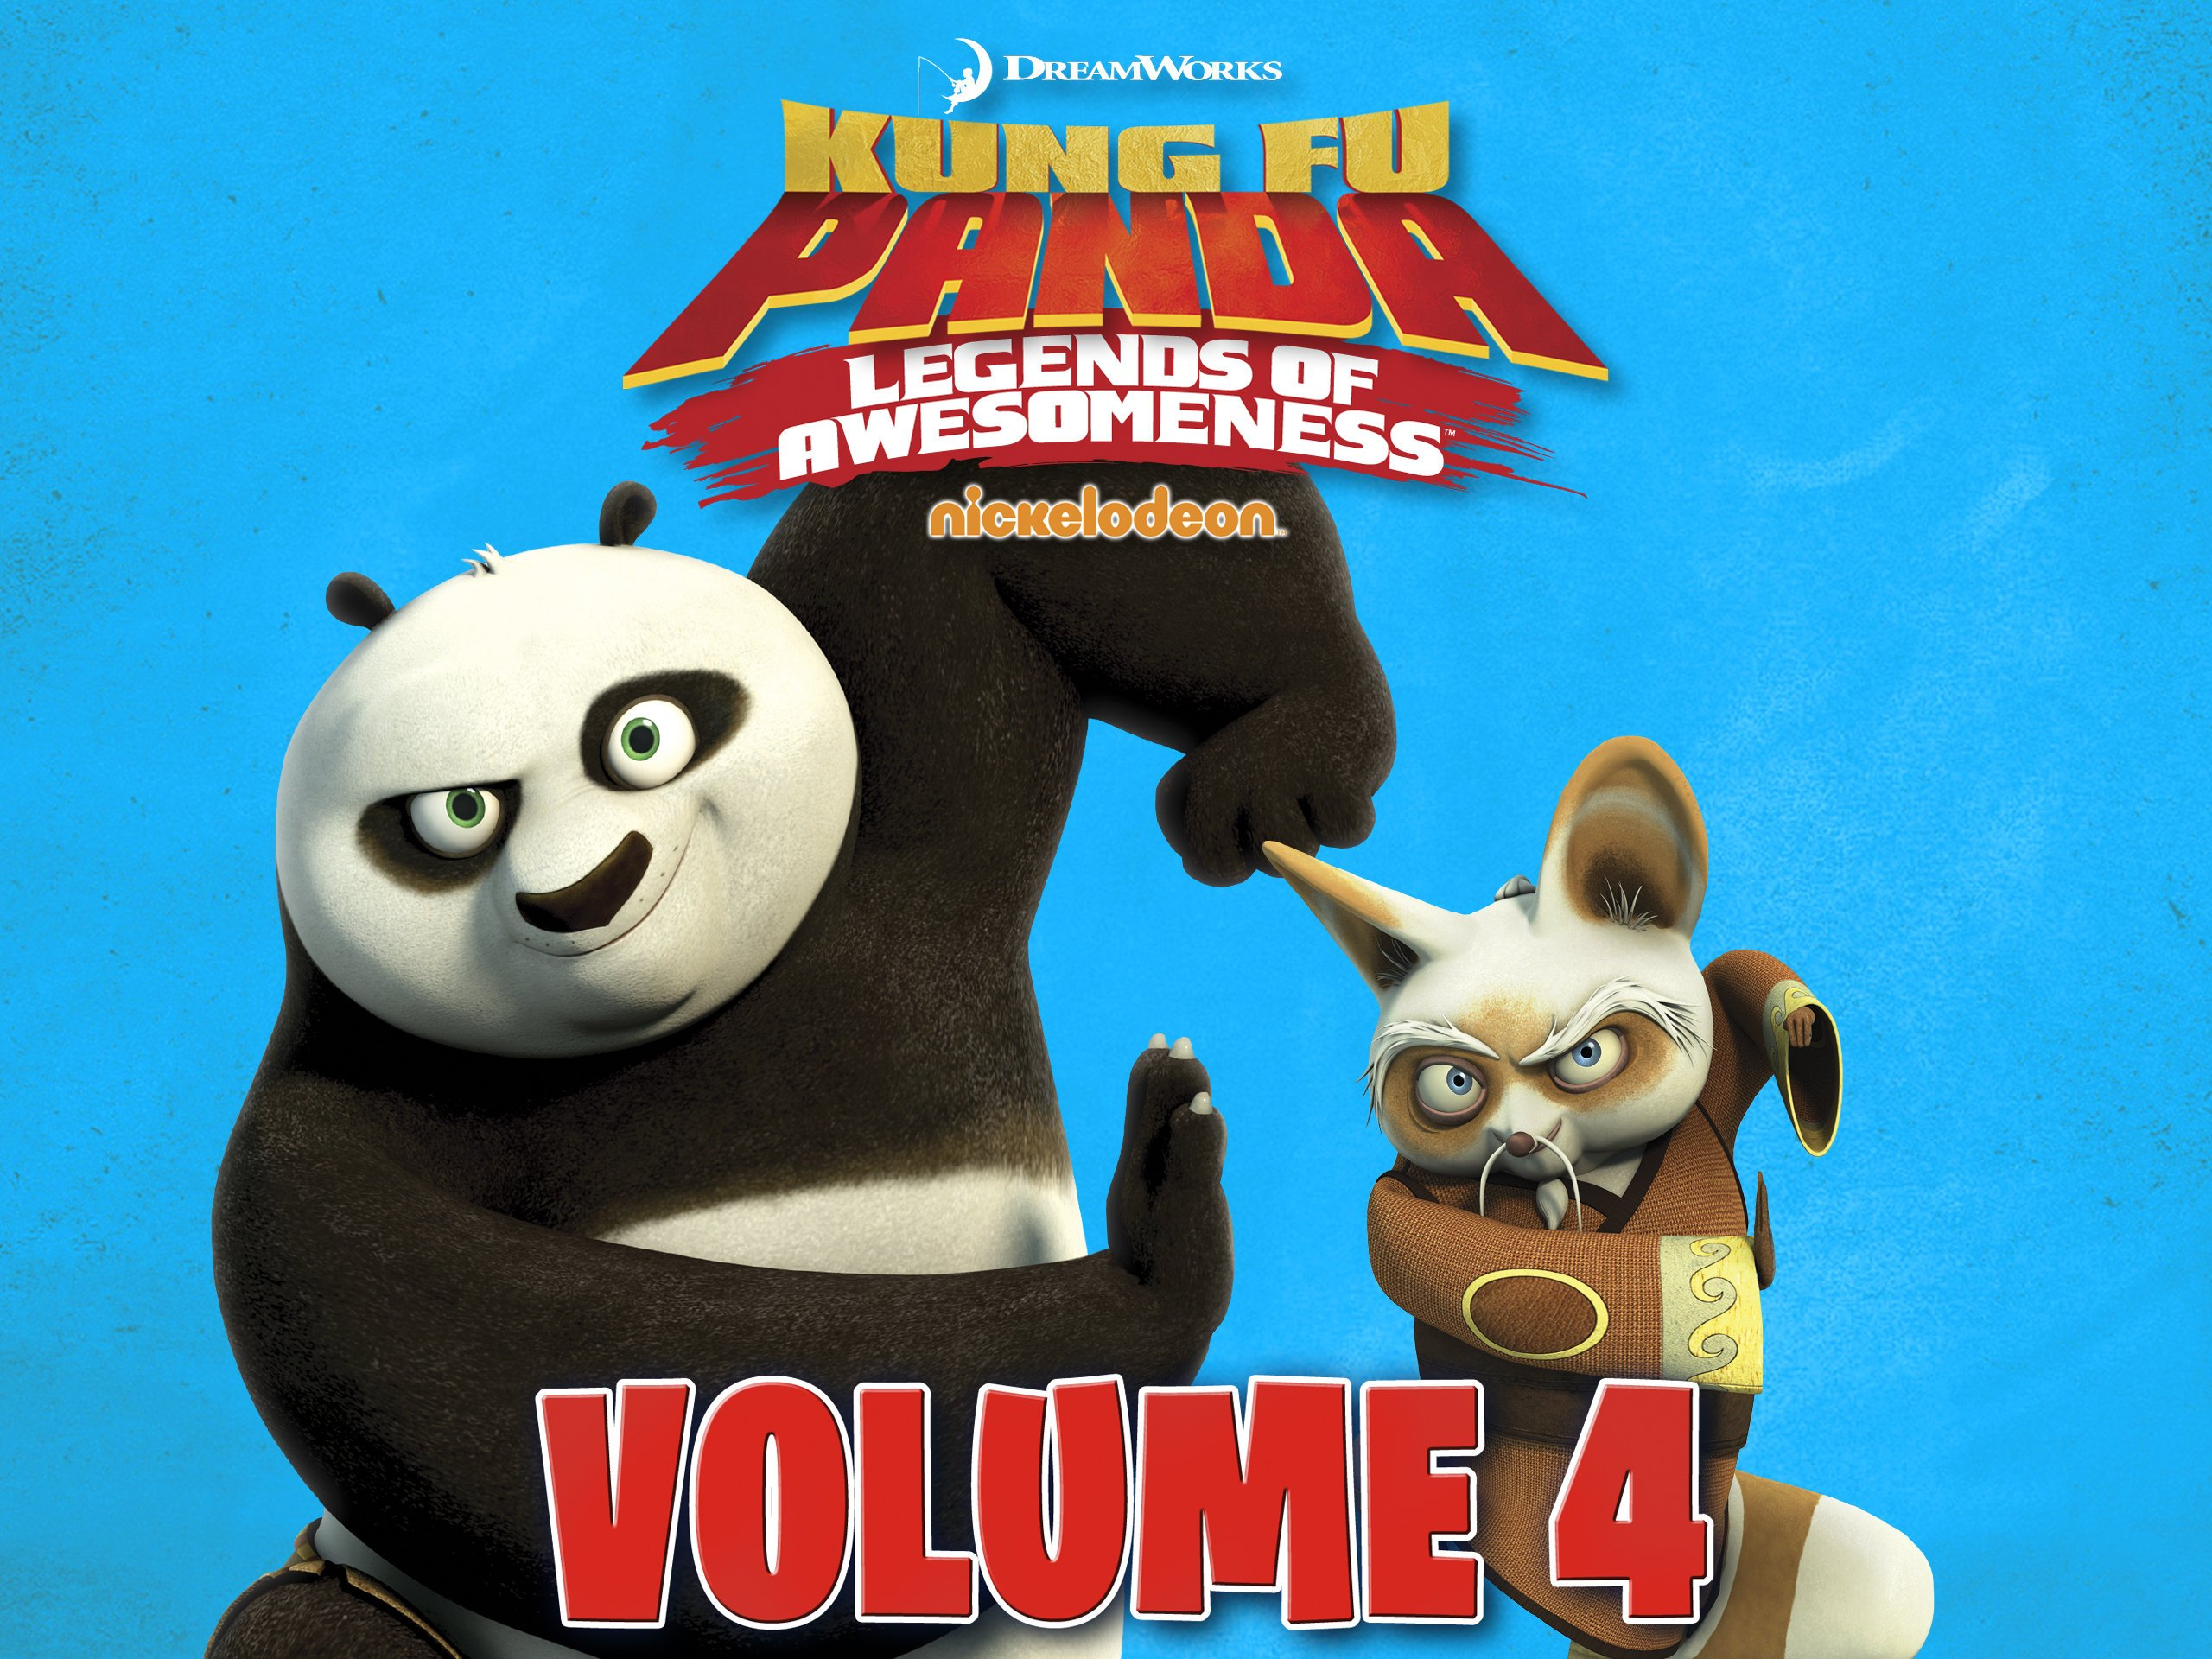 Kung Fu Panda 4 New Cast Things To Know About The Future Old Characters New Story Many More The Inner Sane